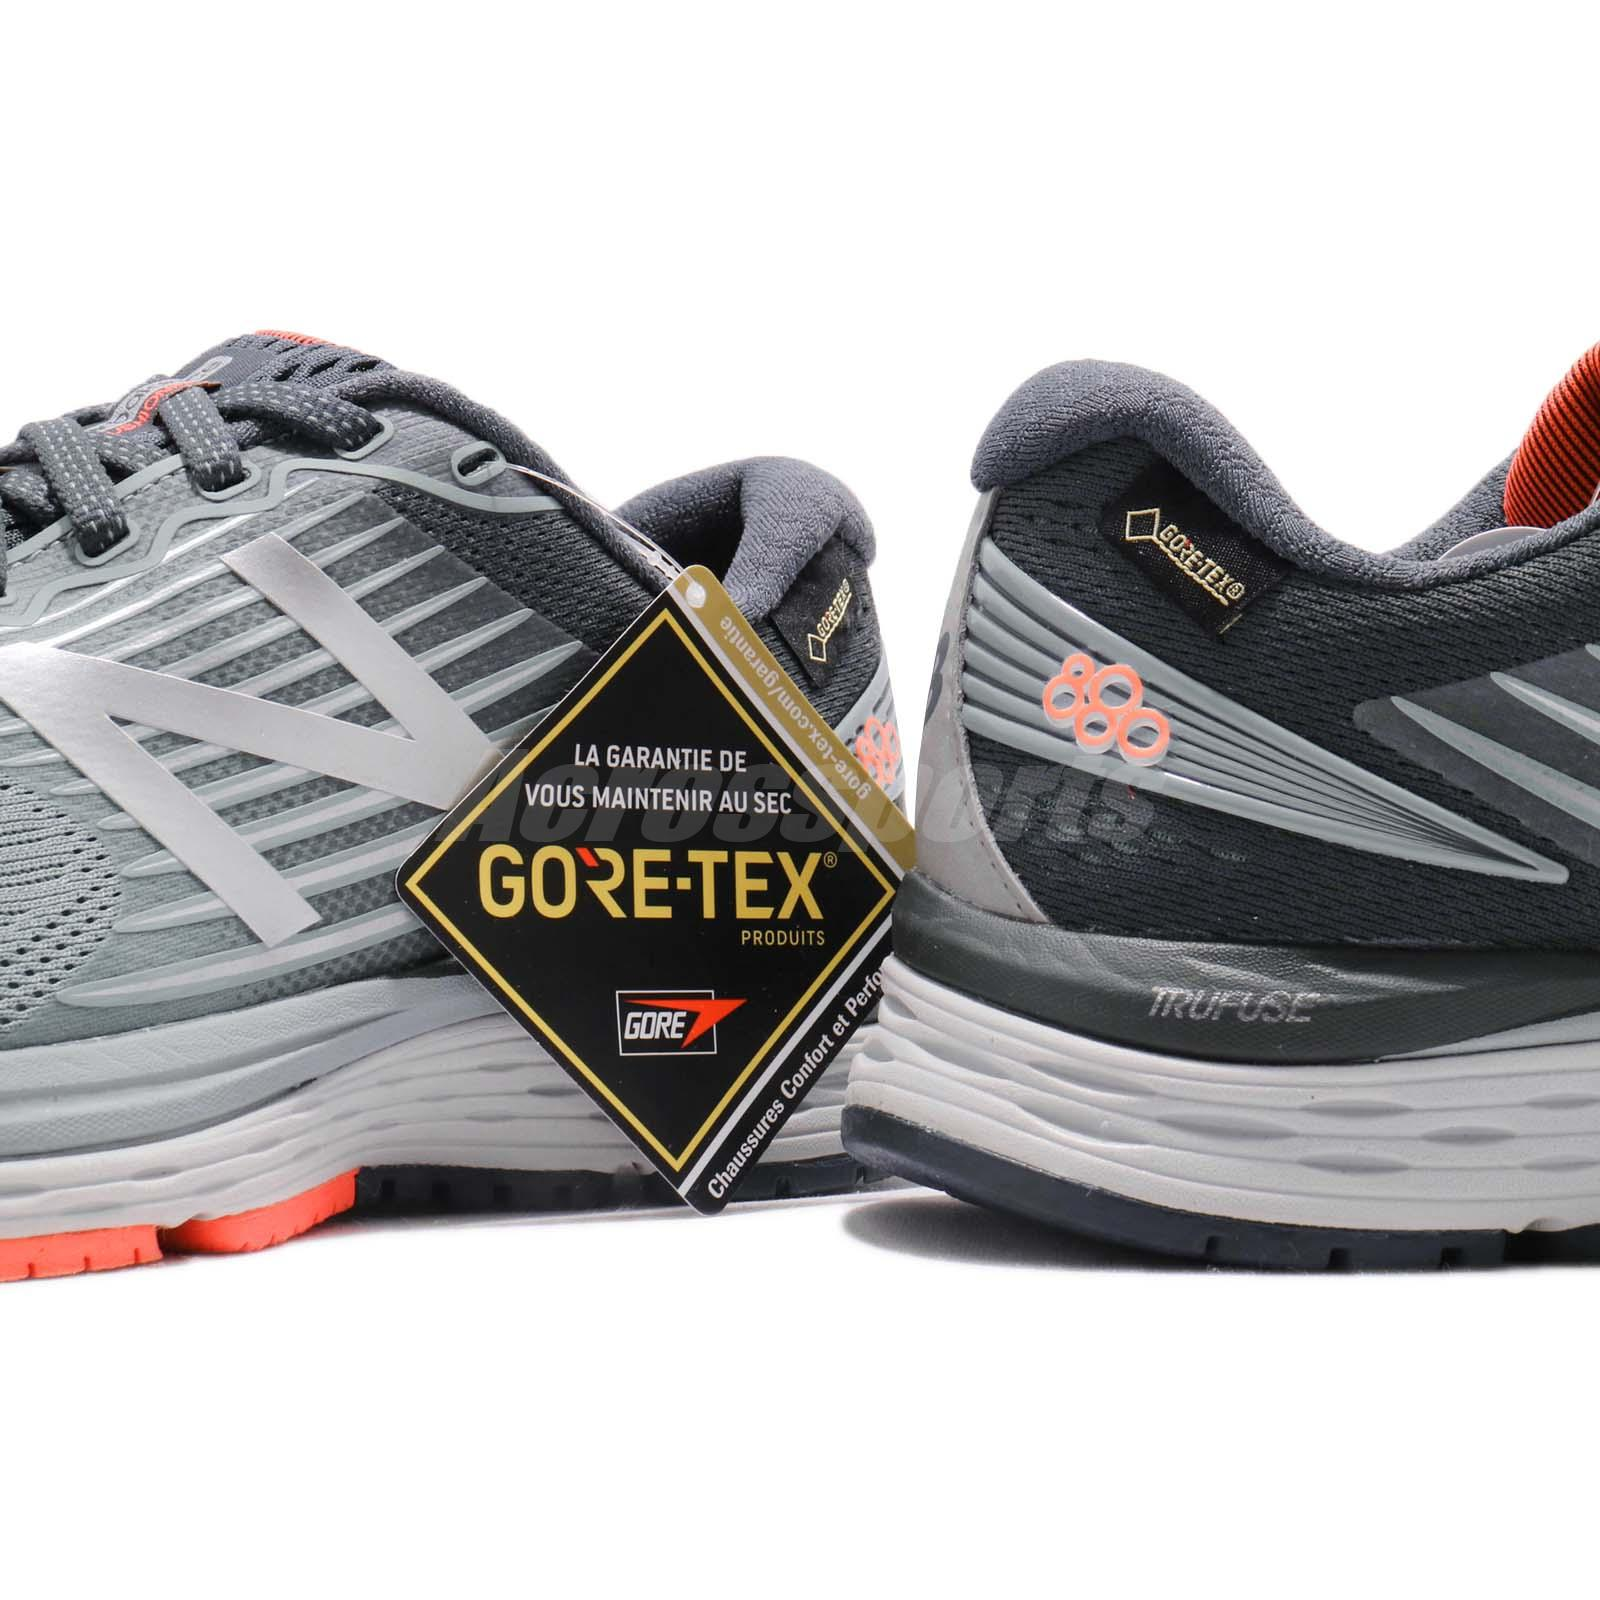 *NIB* Women/'s New Balance Gore-Tex Running Shoes W880BX7 Many Sizes in Stock!